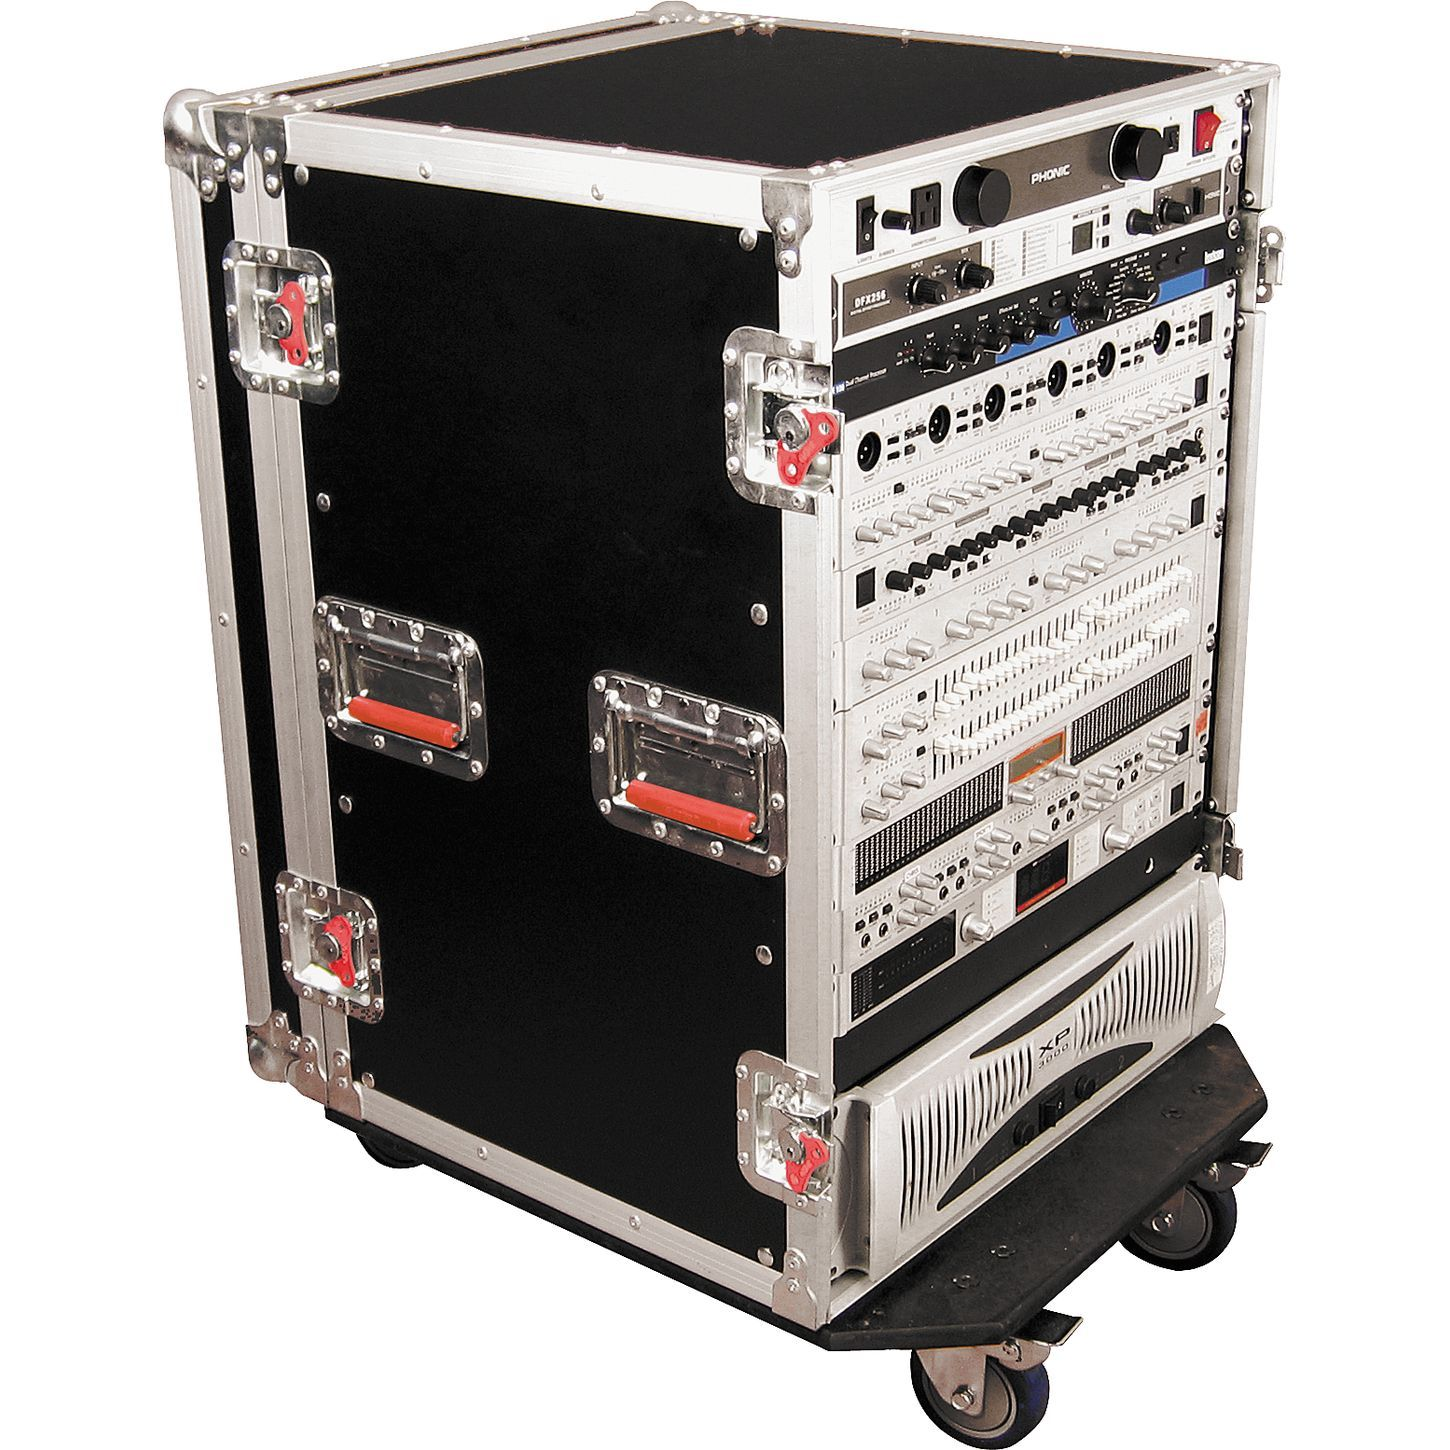 Gator G Tour Rack Road Case With Casters Road Cases Heavy Duty Caster Casters